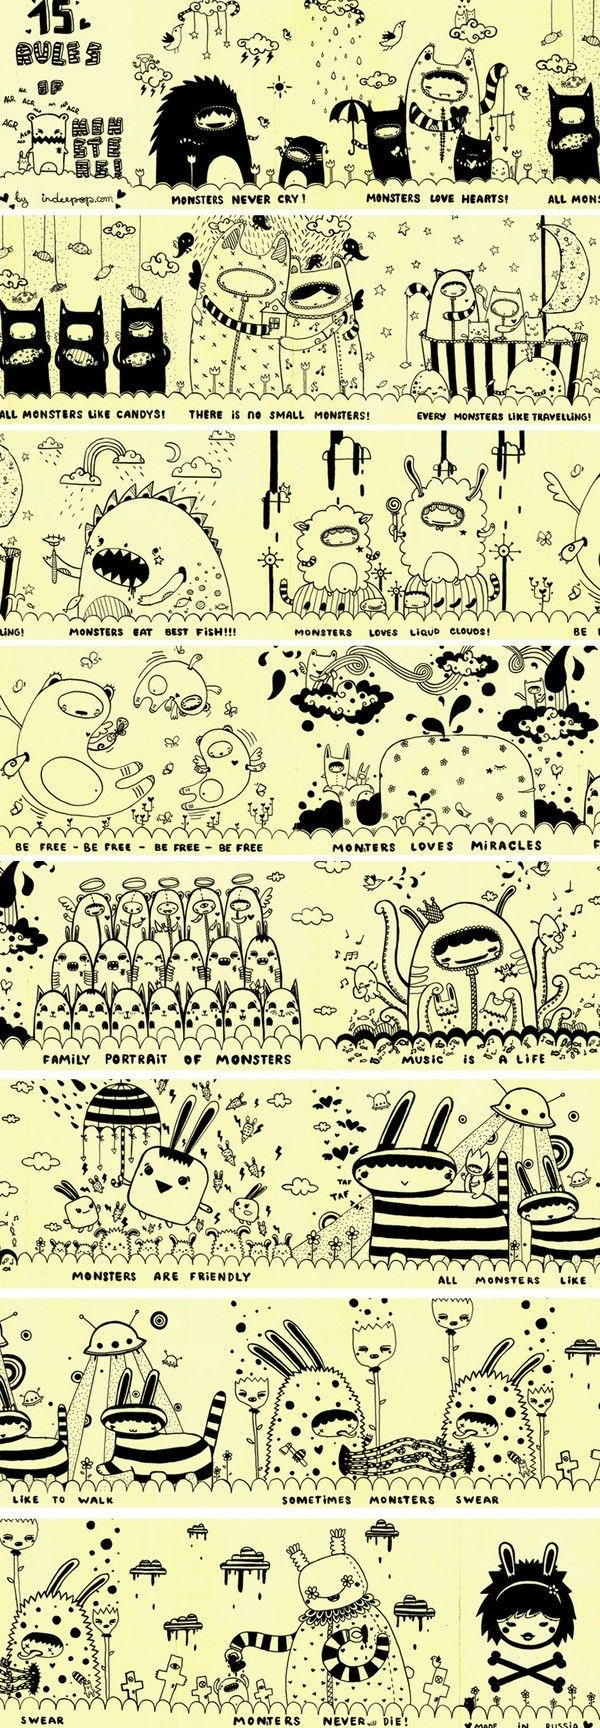 How to Draw Resources for Art Students, CAPI ::: Create Art Portfolio Ideas at milliande.com , Art School Portfolio Work, Sketching, Art Journal, Journaling, illustration,cute, kawaii, creatures,